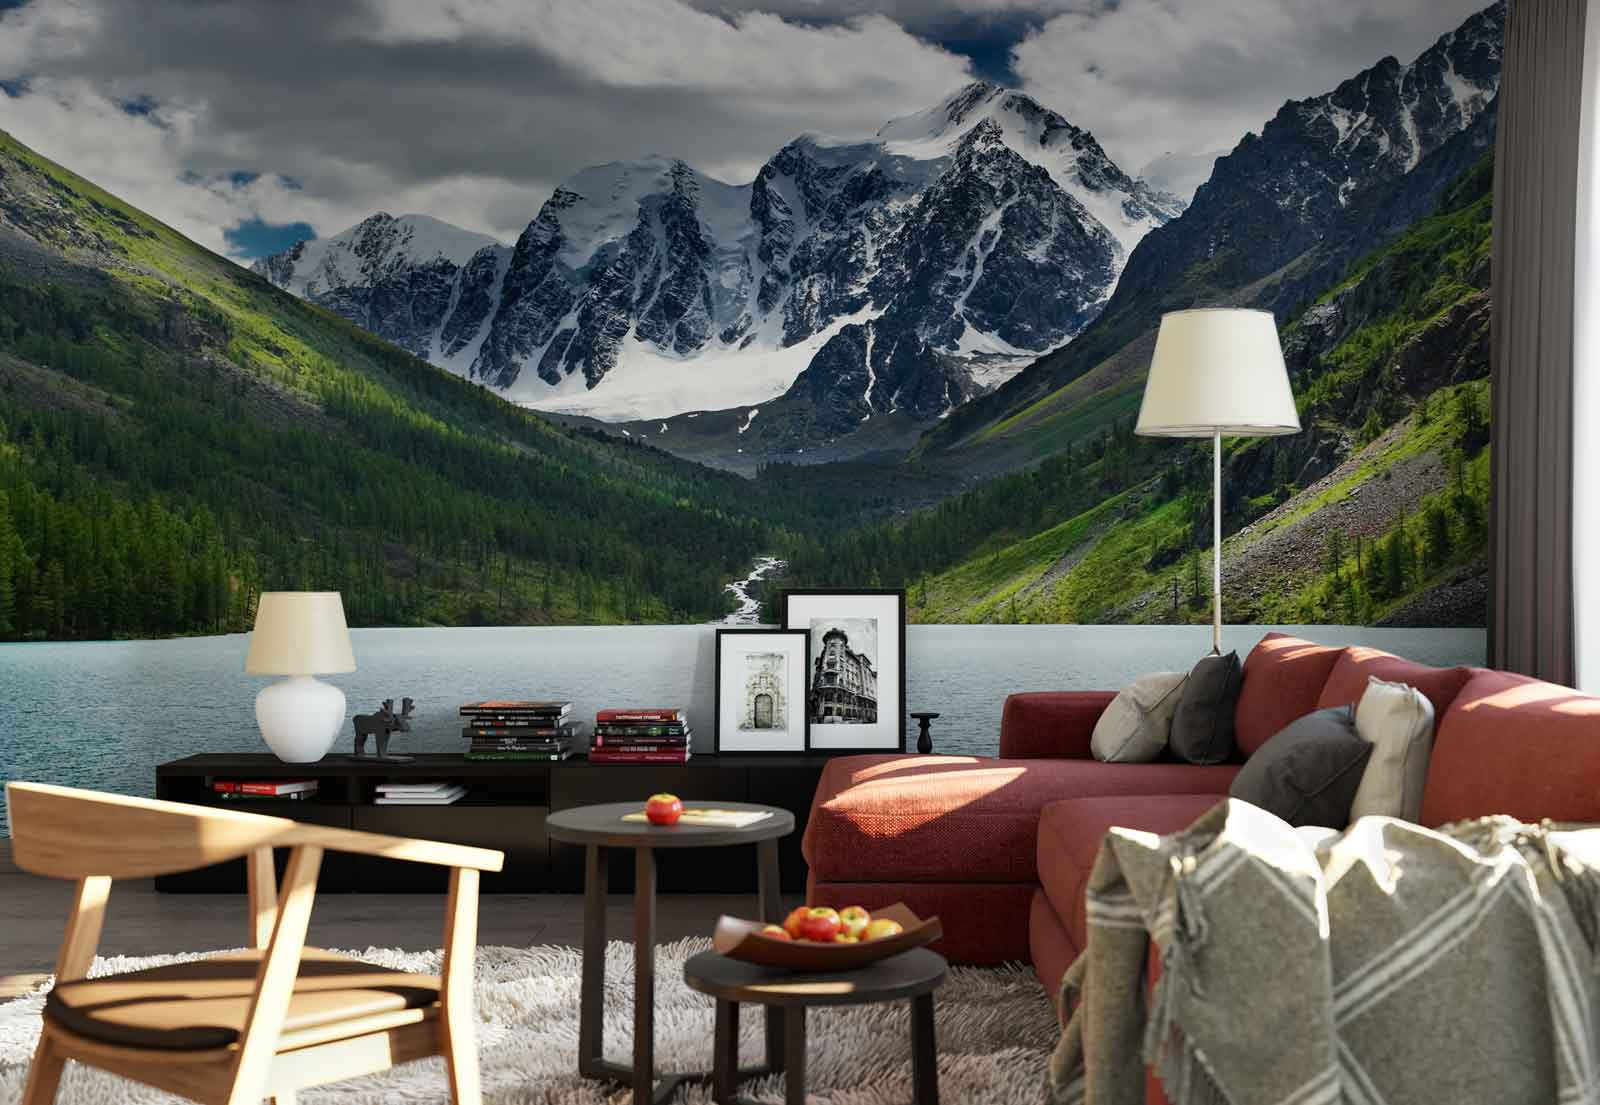 Lake mountains snow photo wallpaper wall mural fw 1062 ebay lake mountains snow photo wallpaper wall mural fw amipublicfo Gallery